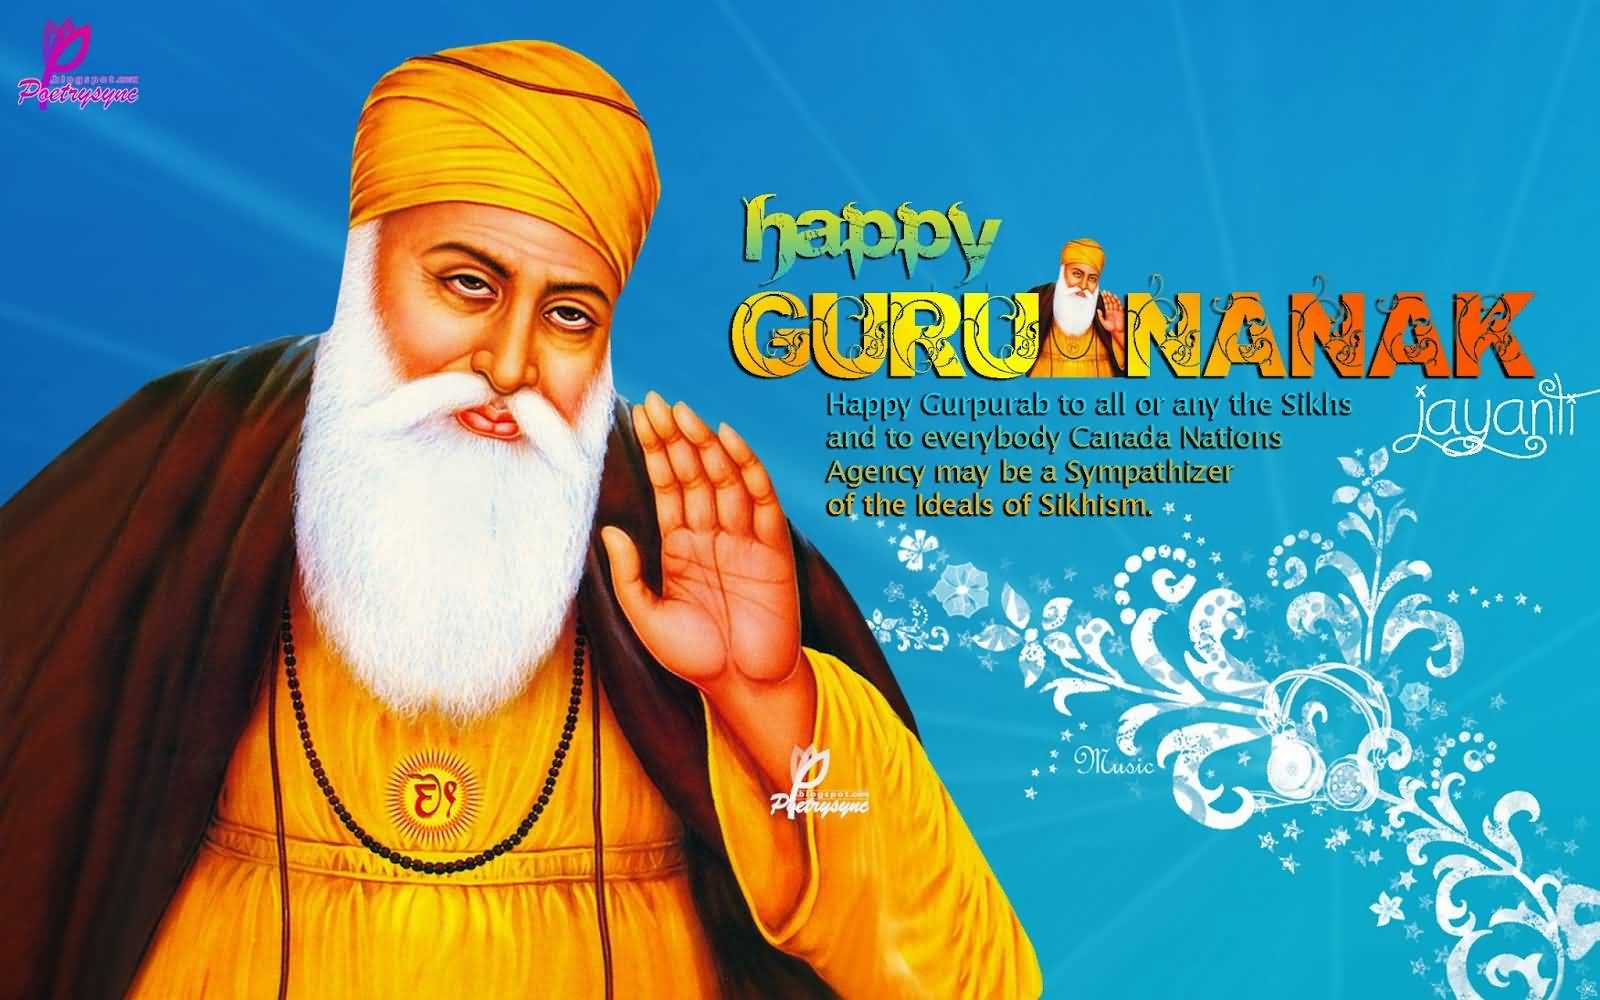 Happy Guru Nanak Jayanti Wishes Wallpaper